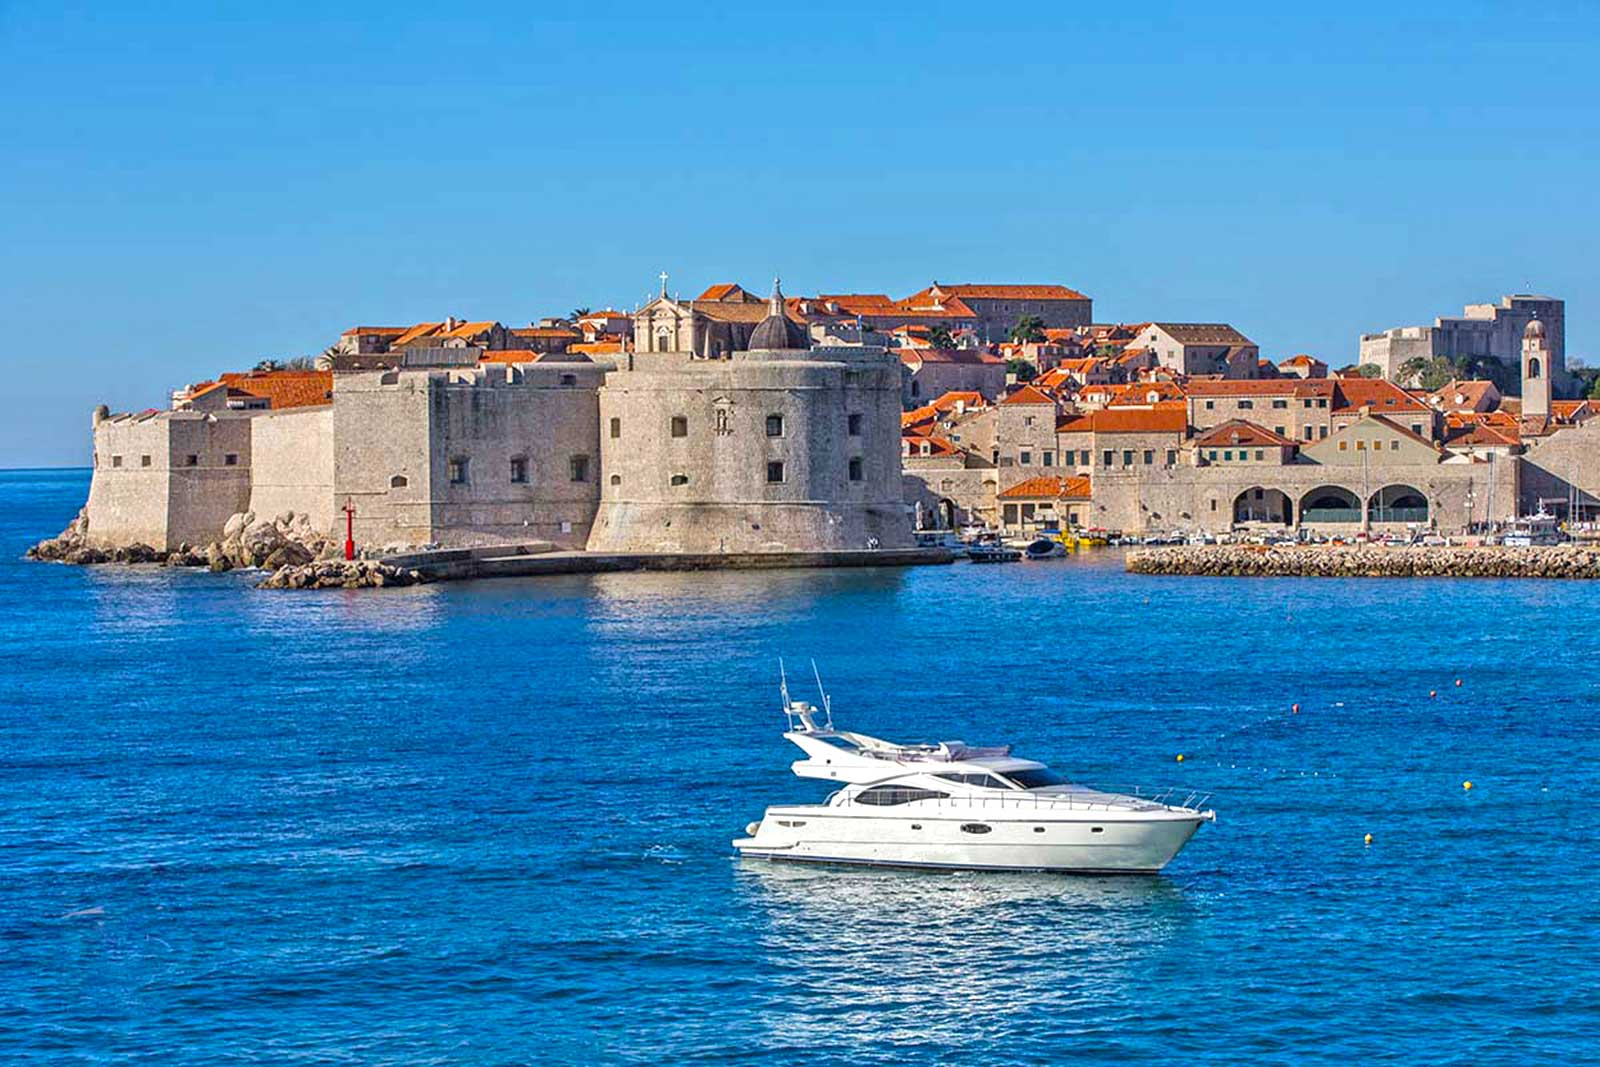 -images-excursions-elaphite-islands-speed-boat-excursion-dubrovnik-boats-02-ferretti-591-dubrovnik-old-town.jpg